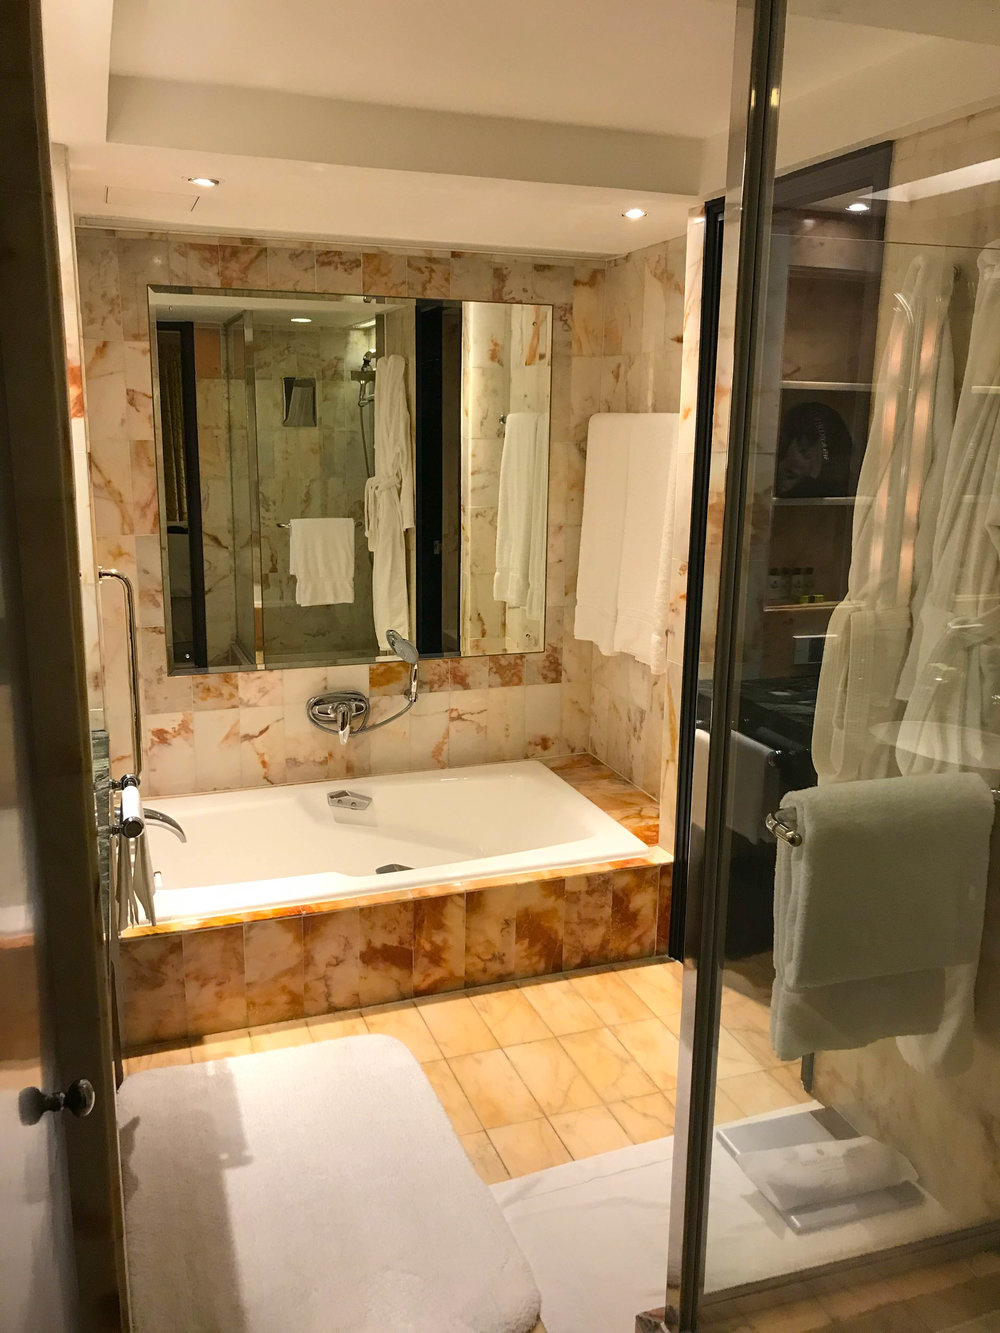 Hong Kong Intercontinental Bathroom